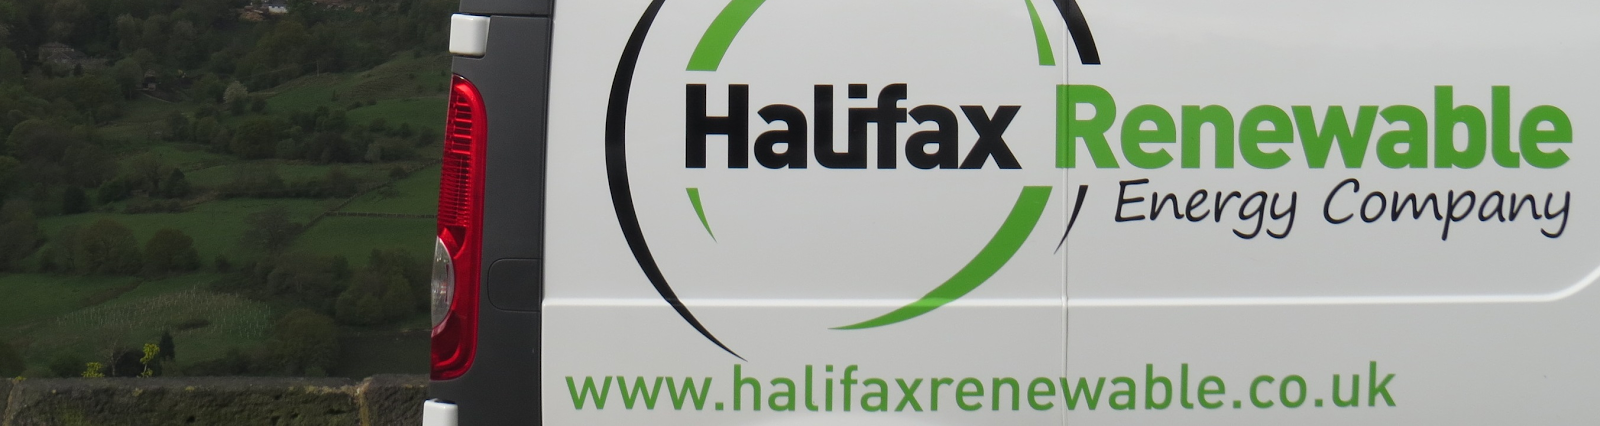 Halifax Renewable Energy